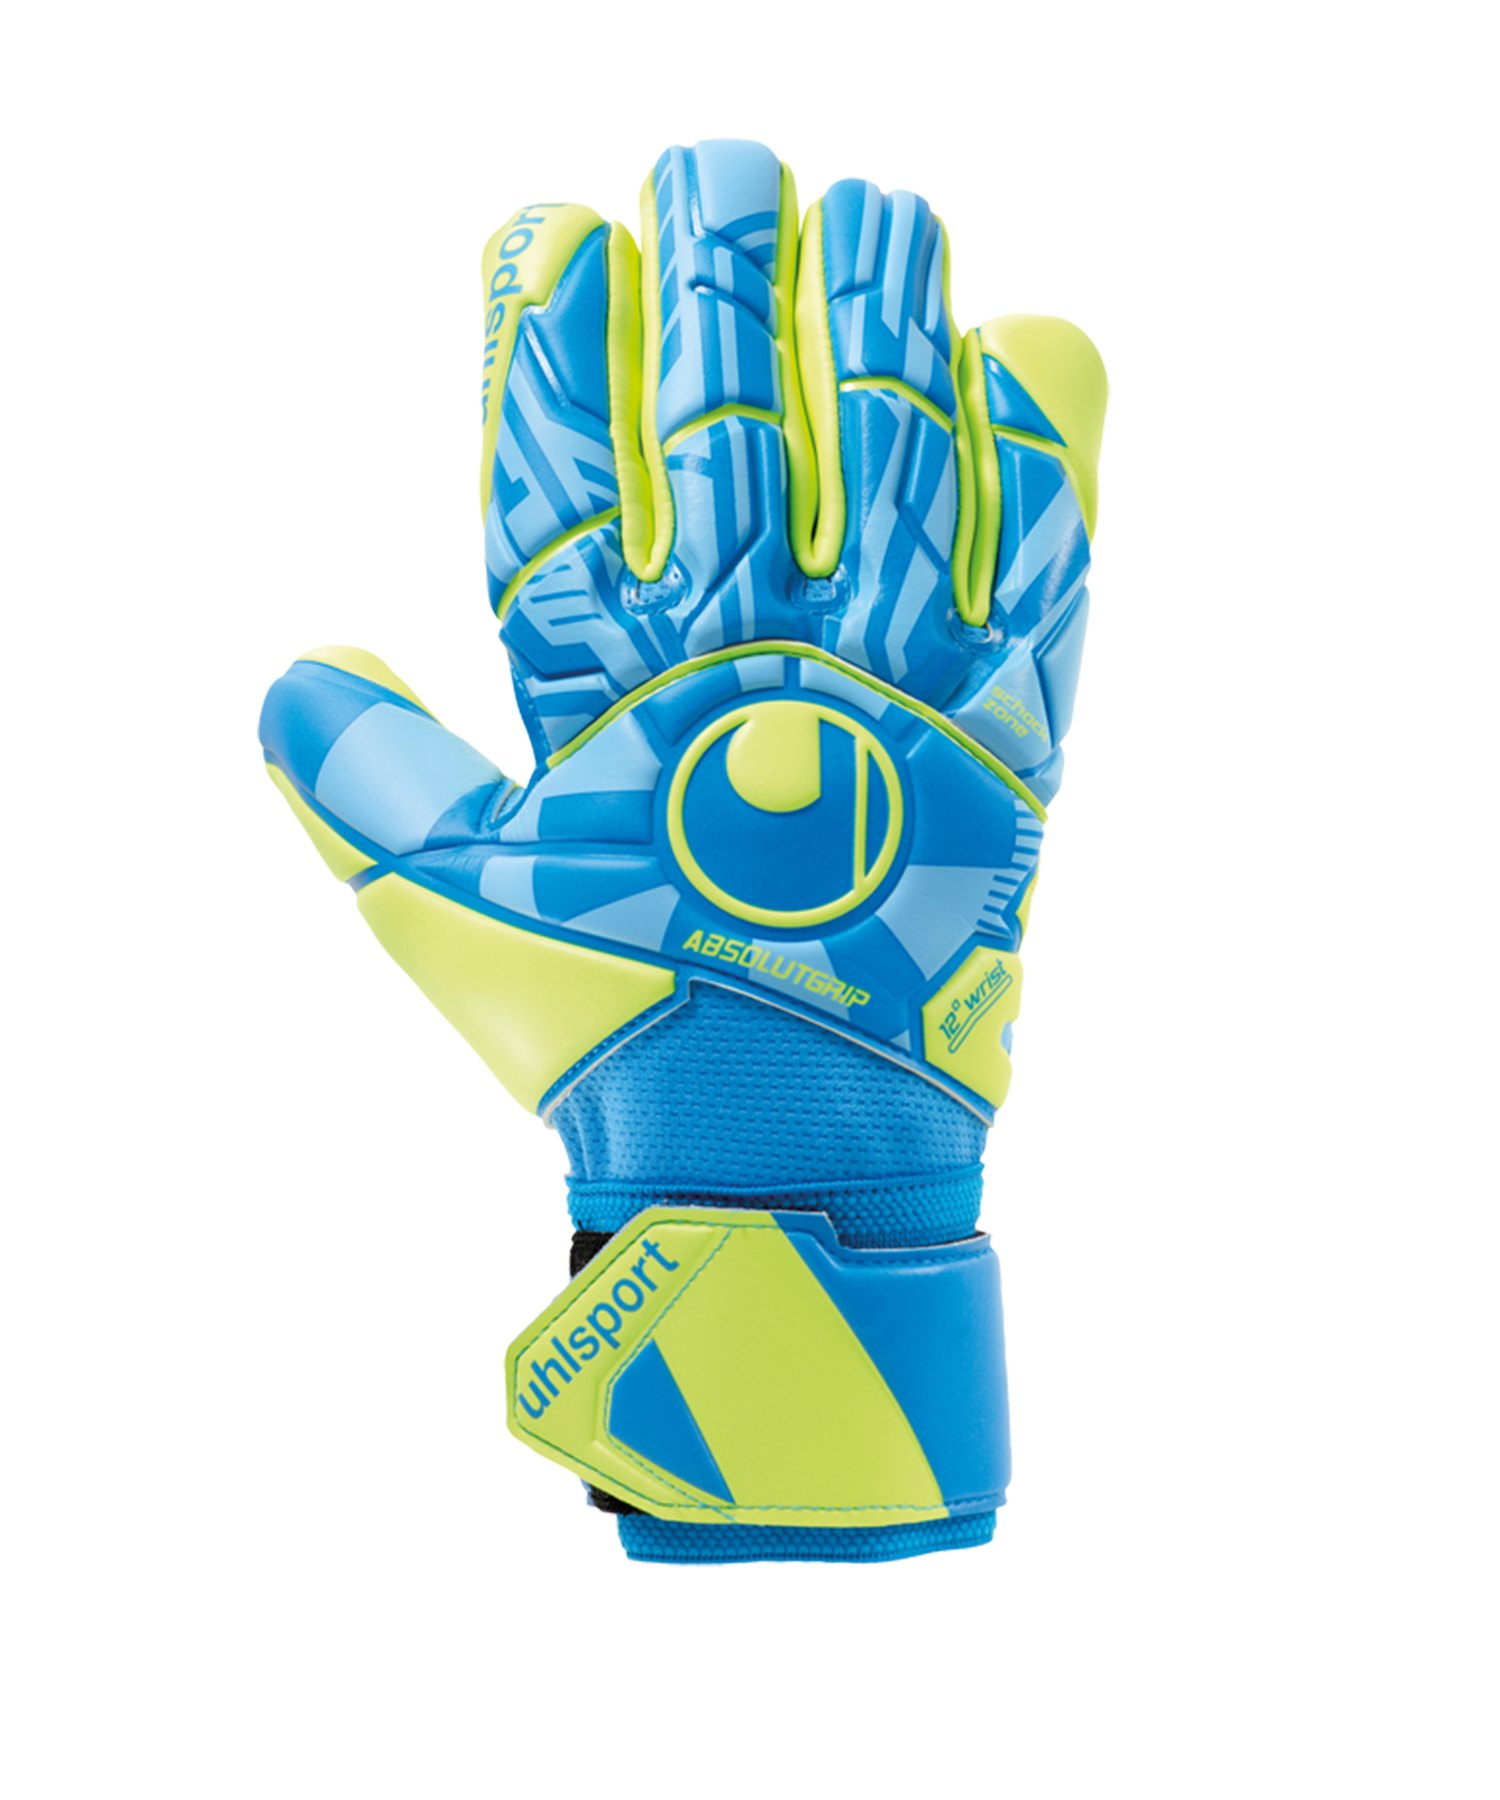 Uhlsport Radar Control Absolutgrip HN F01 - Blau